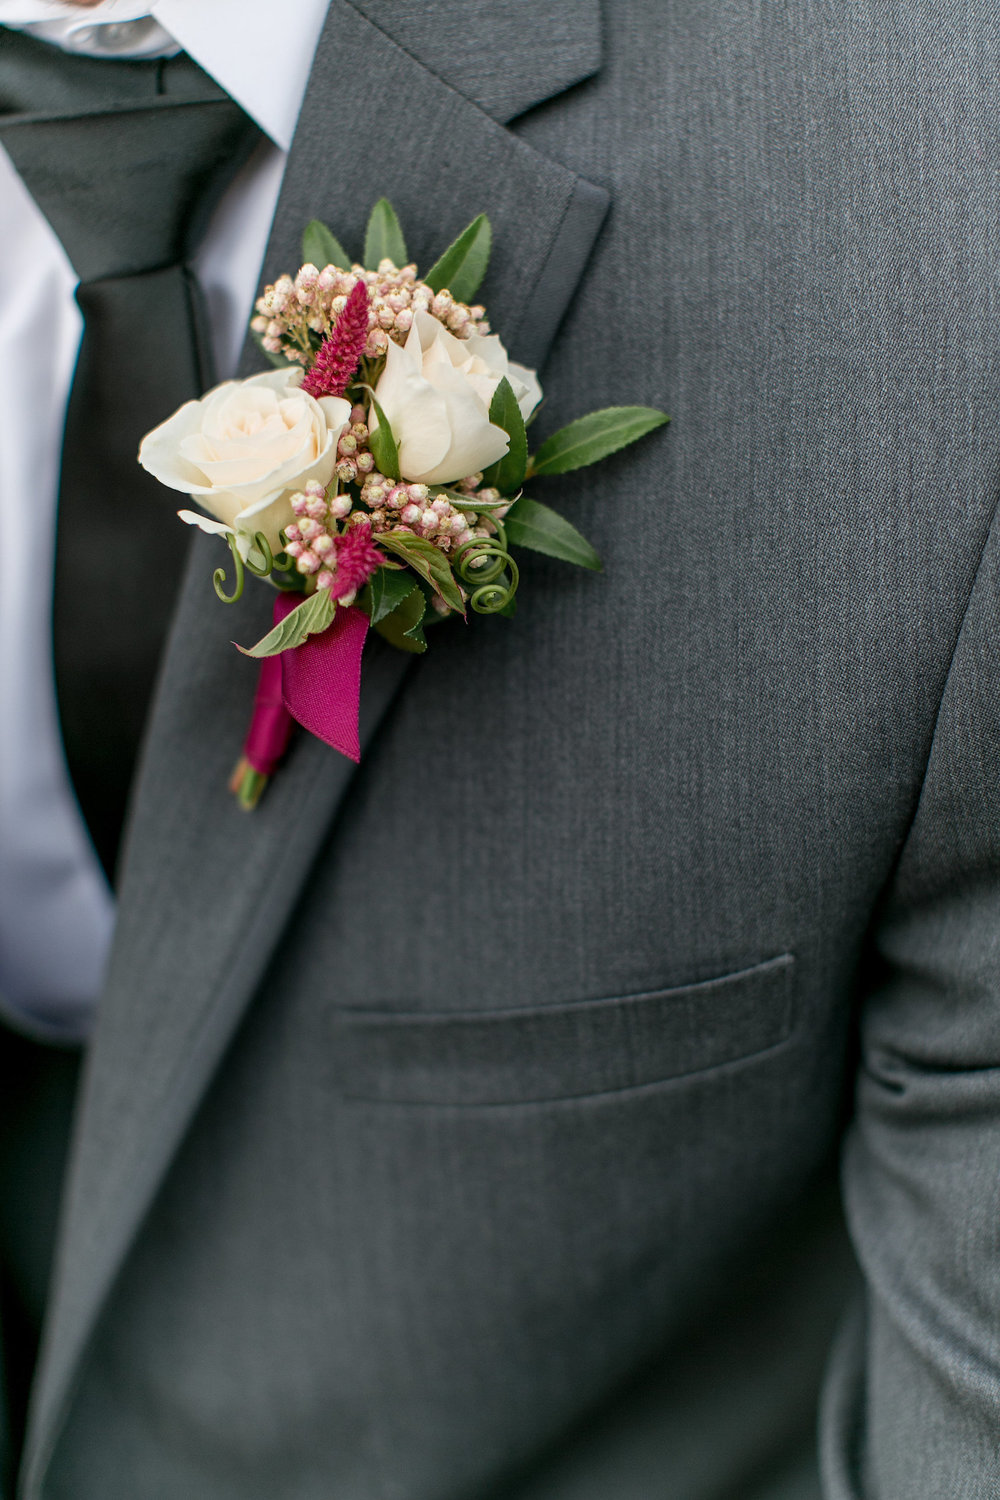 Marsala & blush boutonniere bouquet by San Diego wedding florist, Compass Floral.